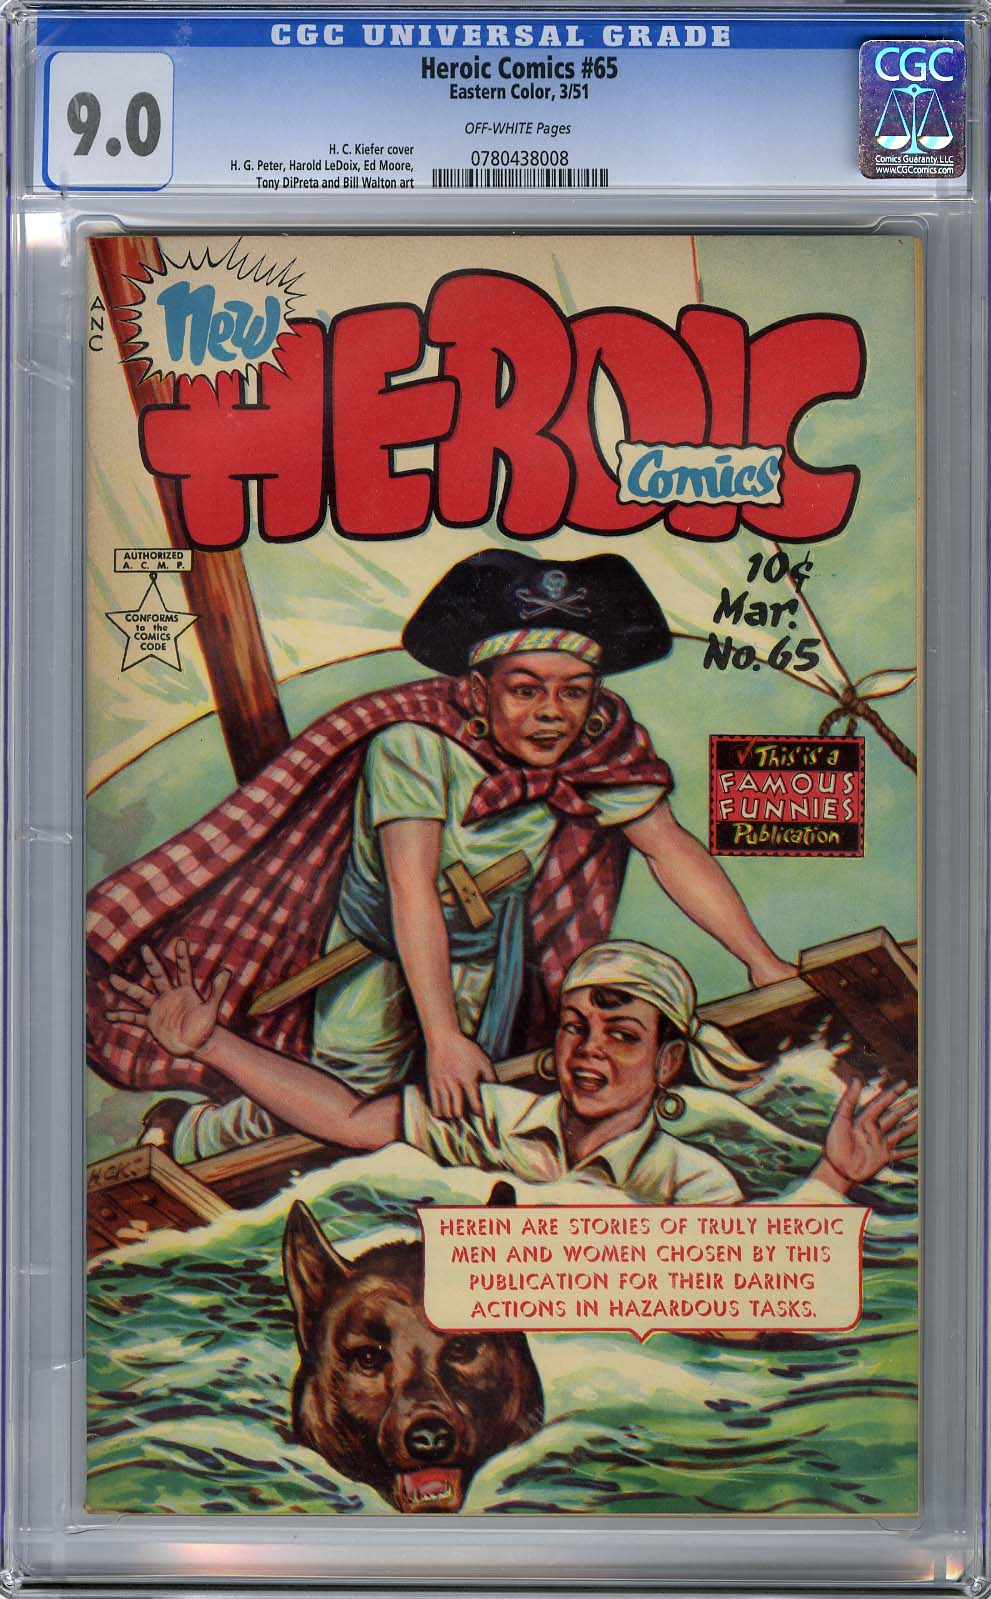 HEROIC COMICS #65 (1951) CGC VF/NM 9.0 OFF-WHITE Pages